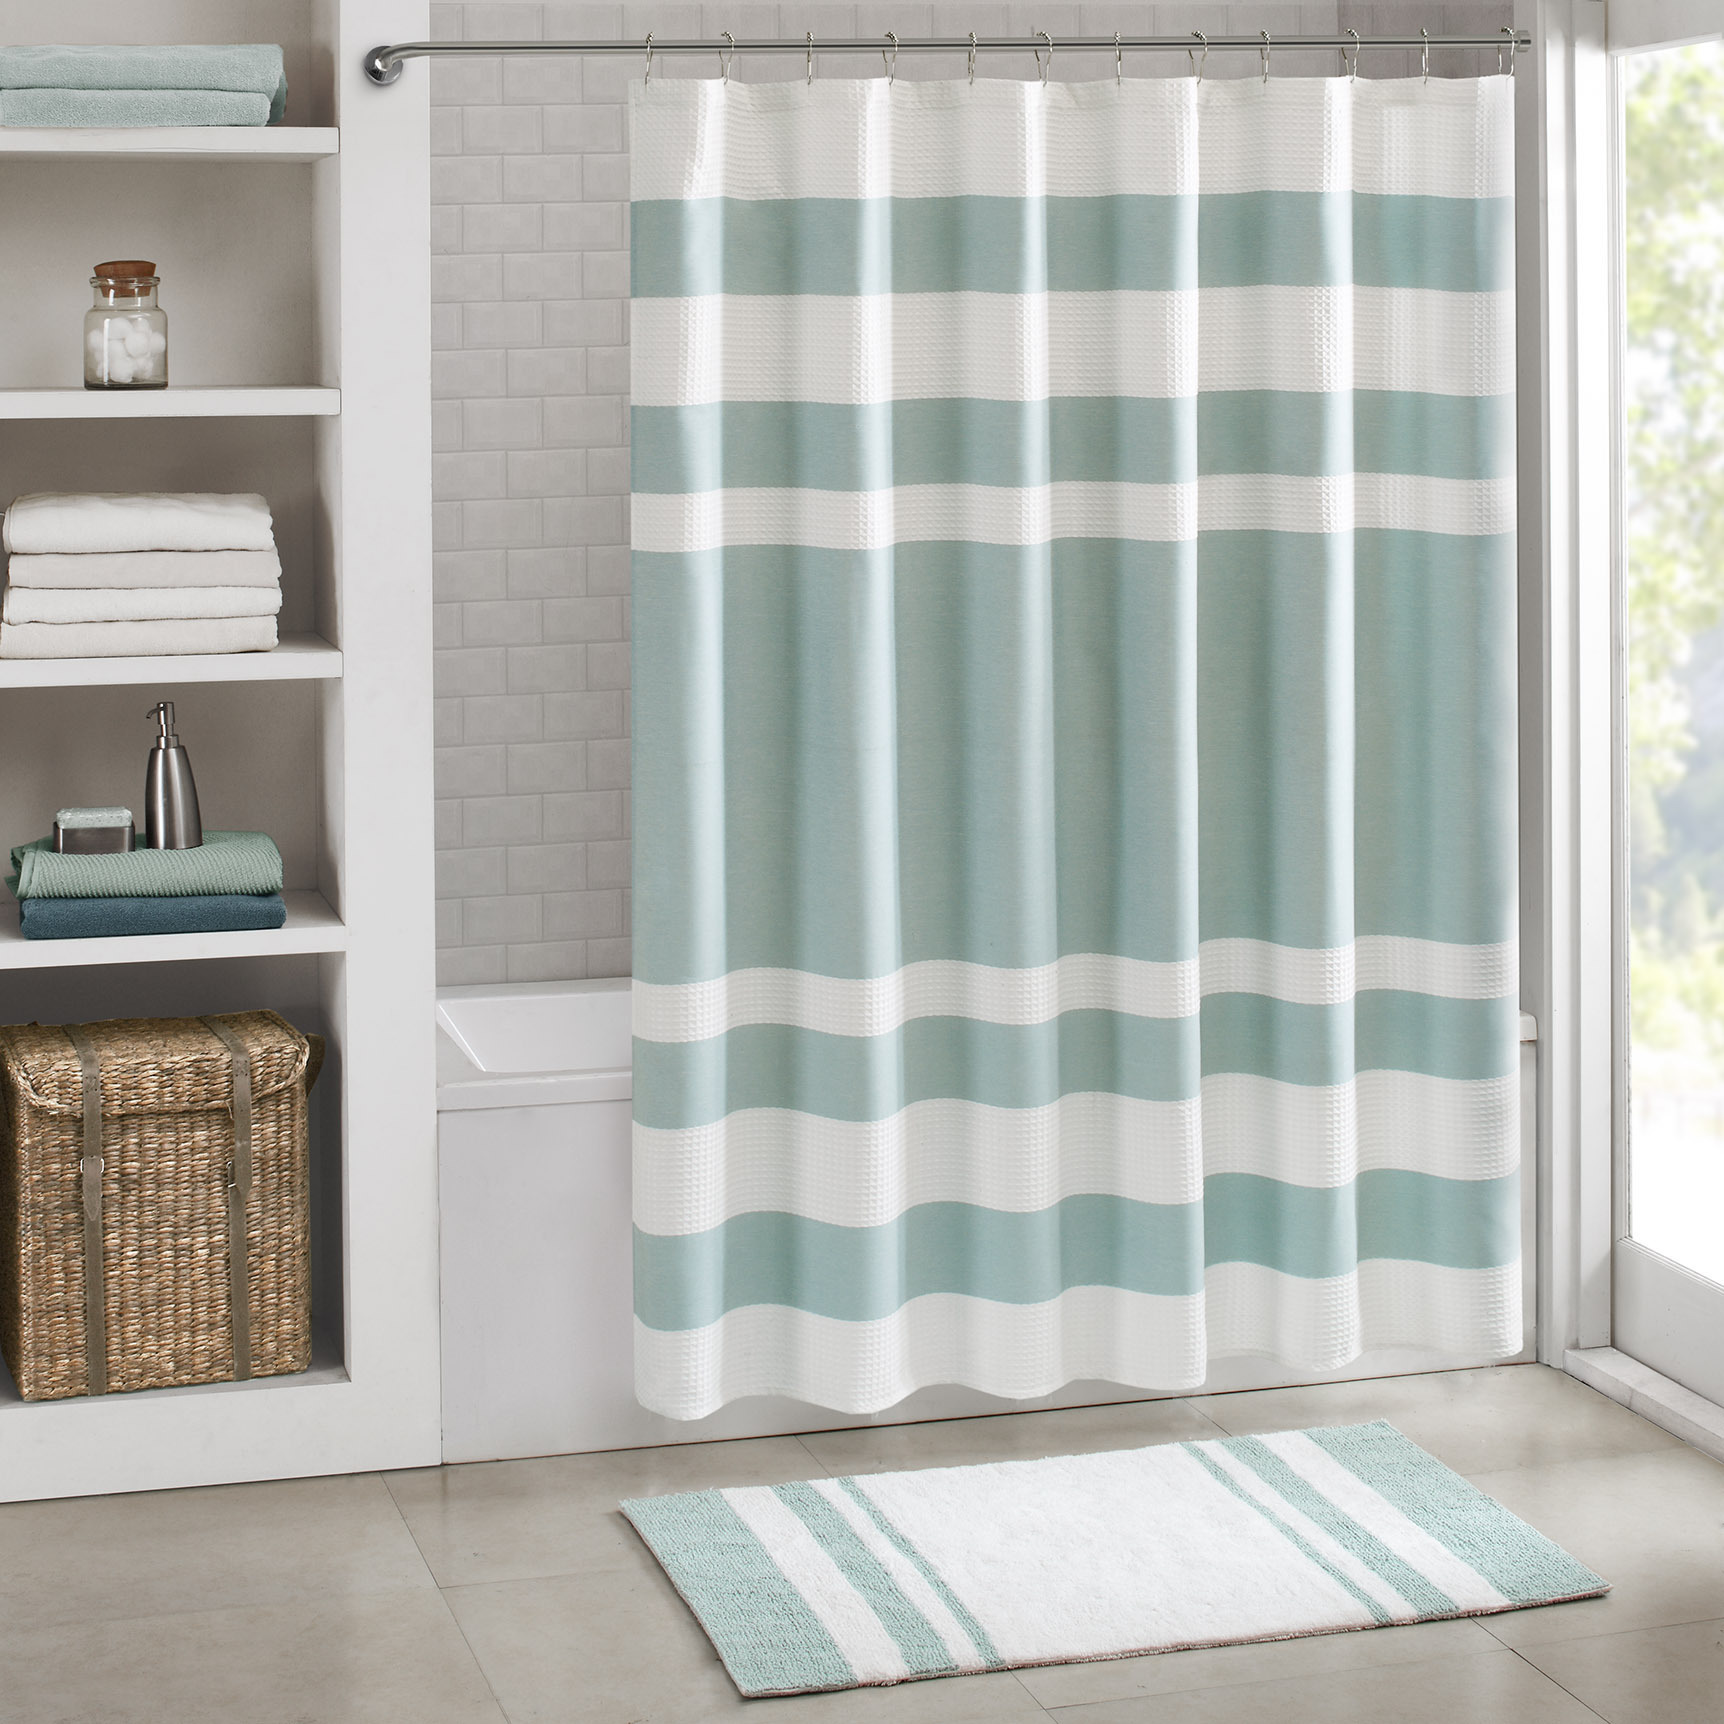 Fullsize Of Green Shower Curtain